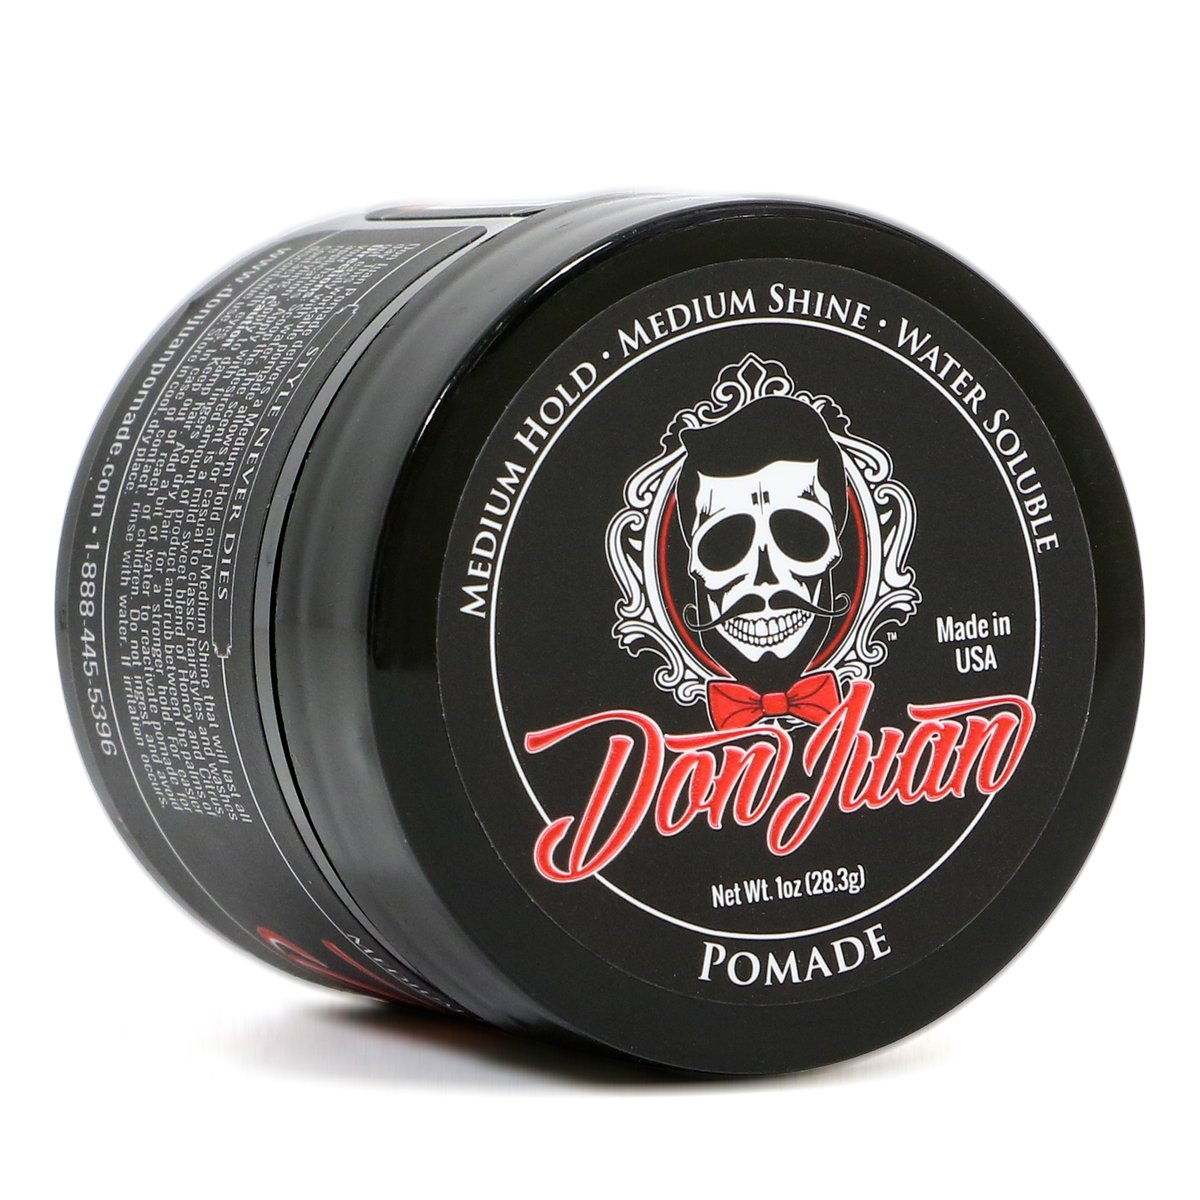 Make sure you have some wherever you go! #donjuanpomade #donjuanpomadeusa #styleneverdies #usa #americana #pomade #hairproducts #mensgrooming   https://www.donjuanpomade.com/shop/don-juan-mini-pomade-1oz/…pic.twitter.com/a4xujDJvme